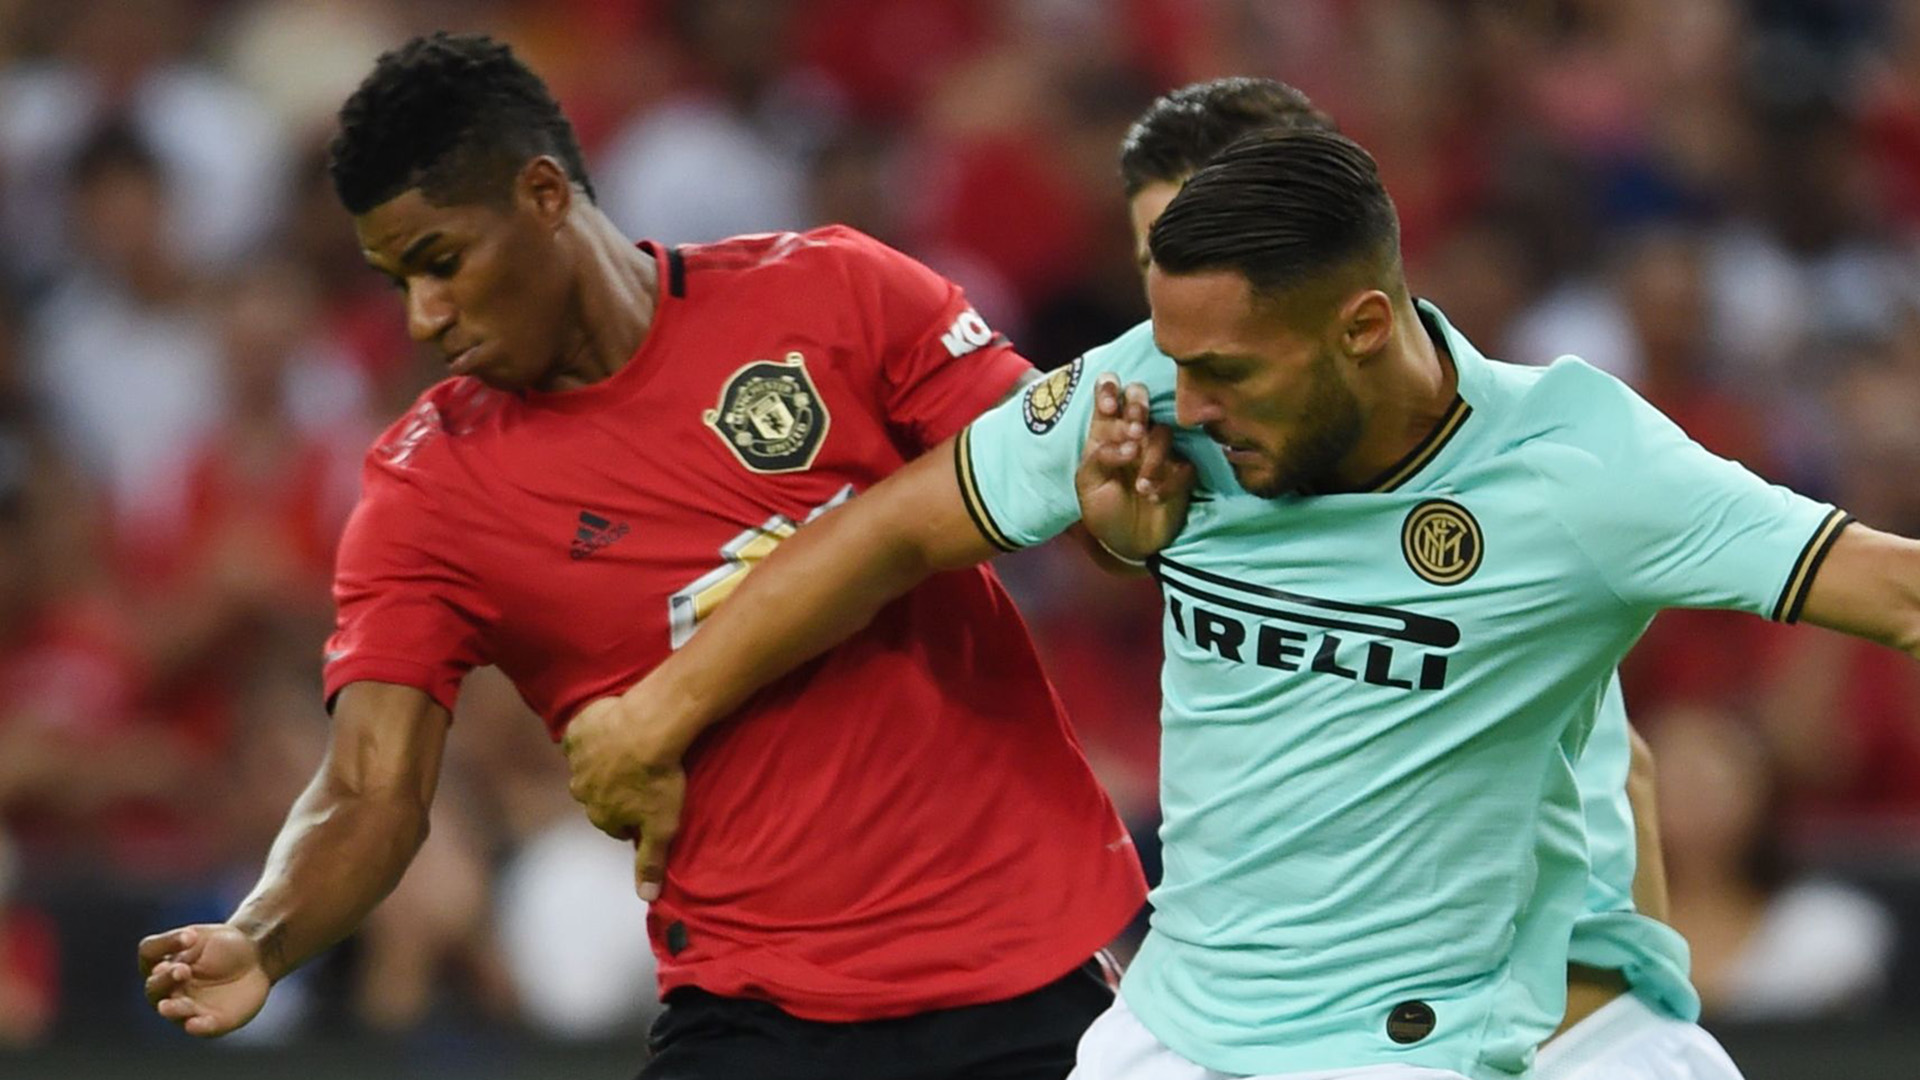 Juventus vs Inter Betting Tips: Latest odds, team news, preview and prediction